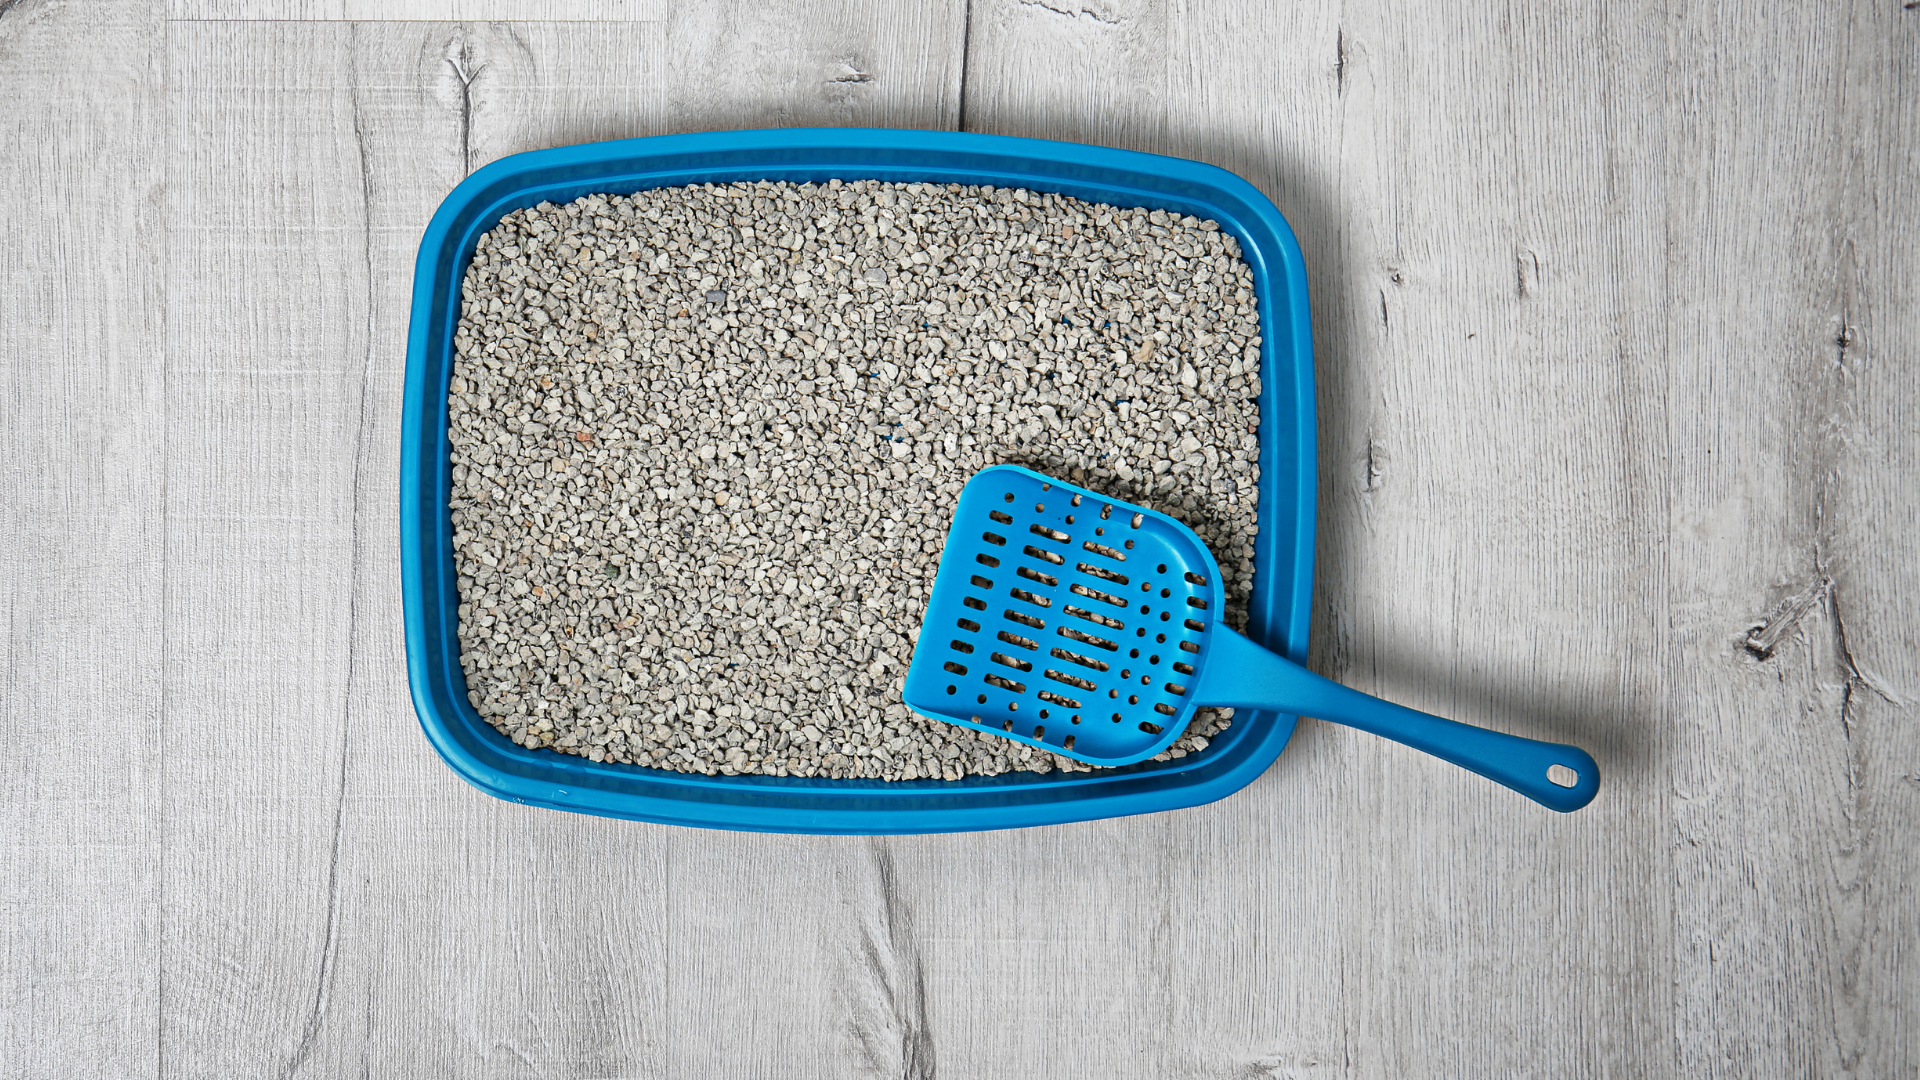 Blue cat litter pan filled with clay cat litter, with a blue cat litter scoop sitting on top.